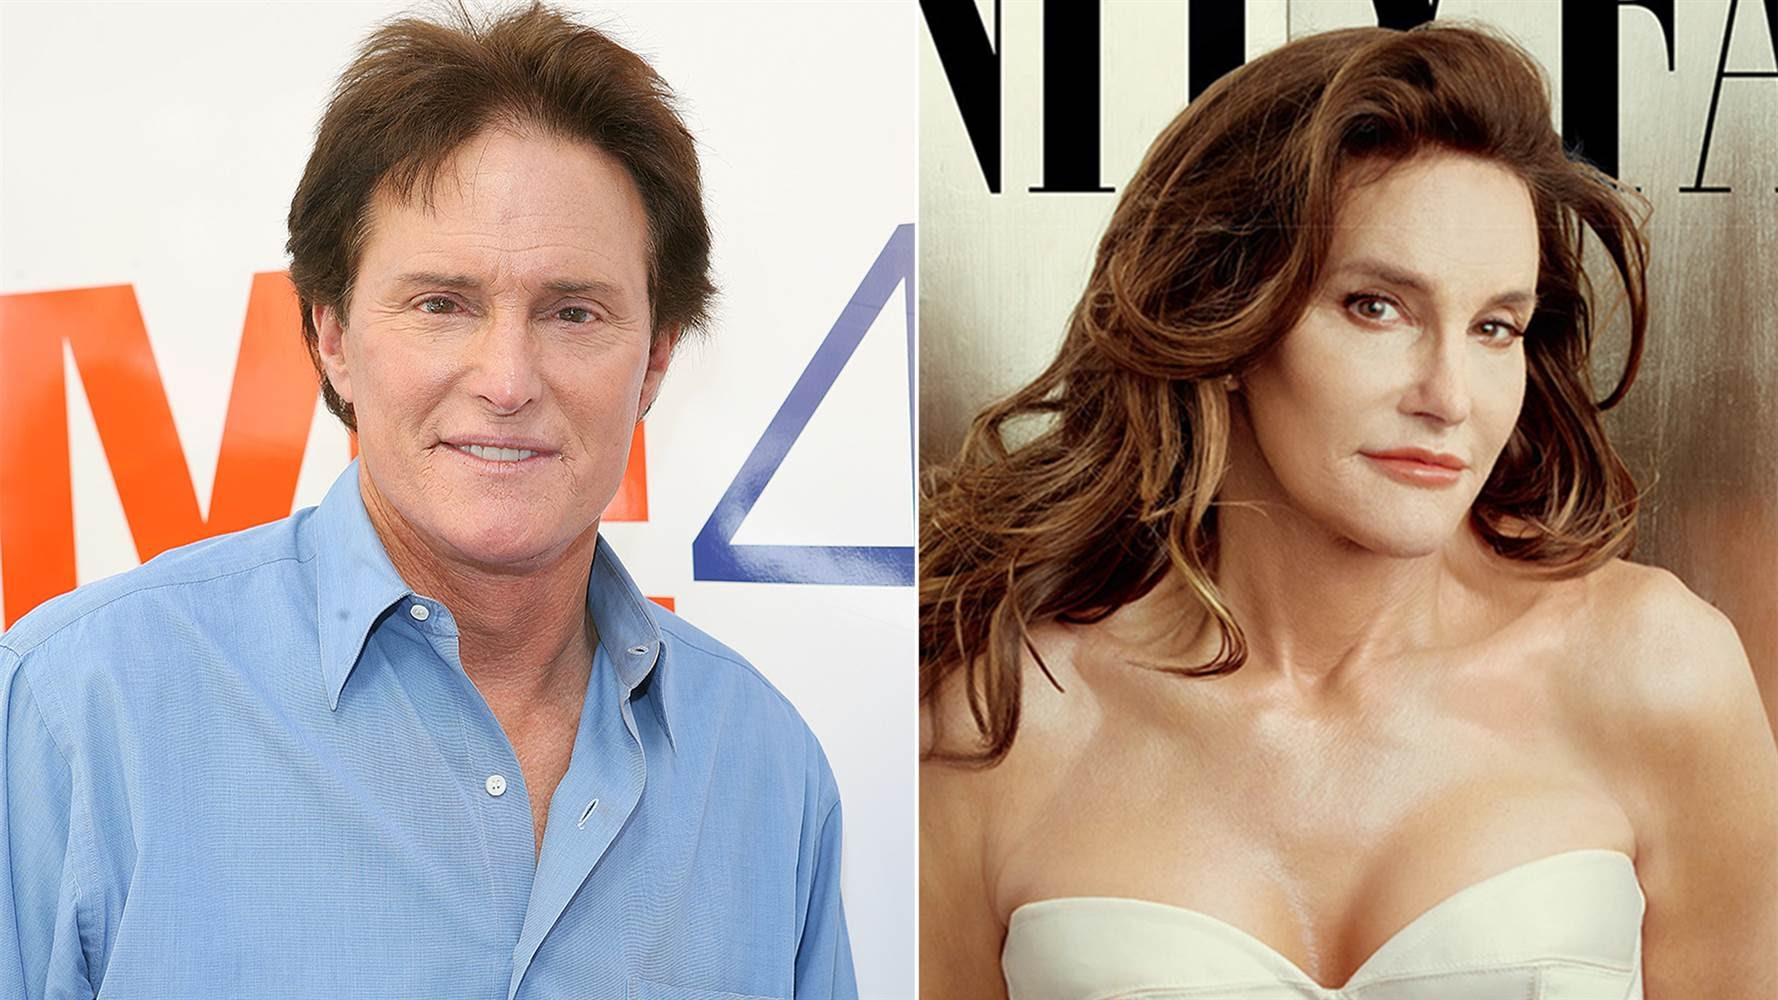 Caitlyn Jenner Before Plastic Surgery photo - 1